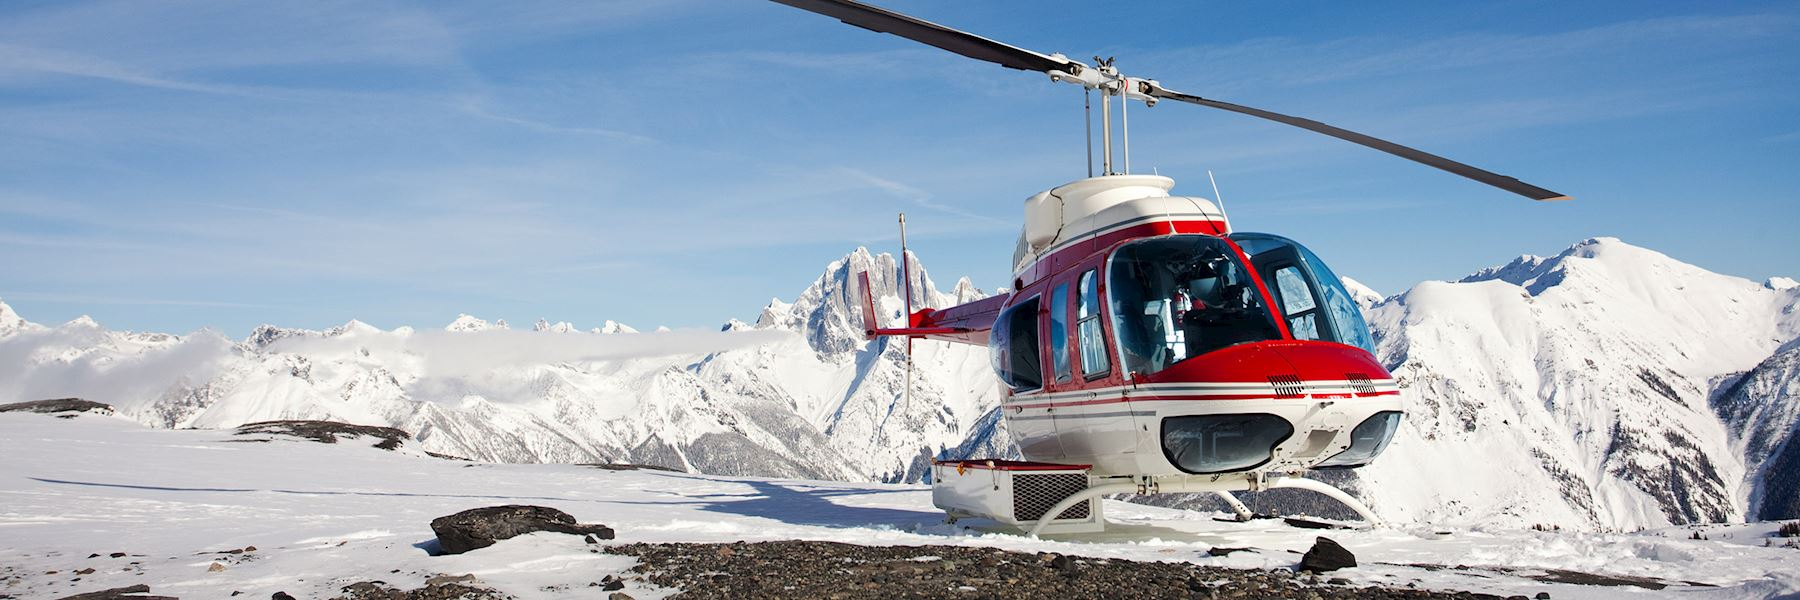 Whistler helicopter tour with glacier landing